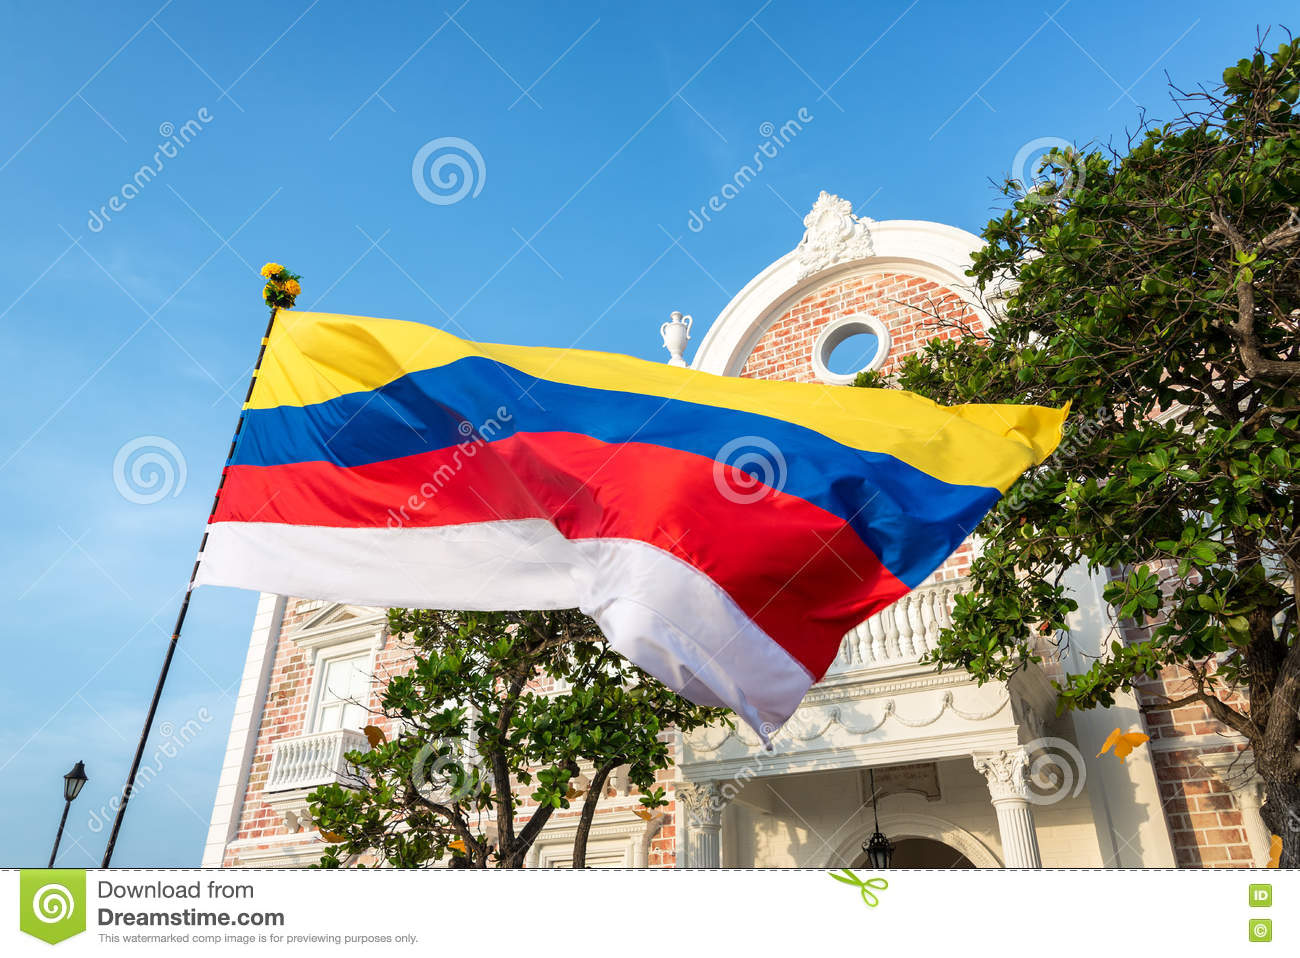 Colombian Flag In Cartagena Stock Image Image Of Cityscape Blue